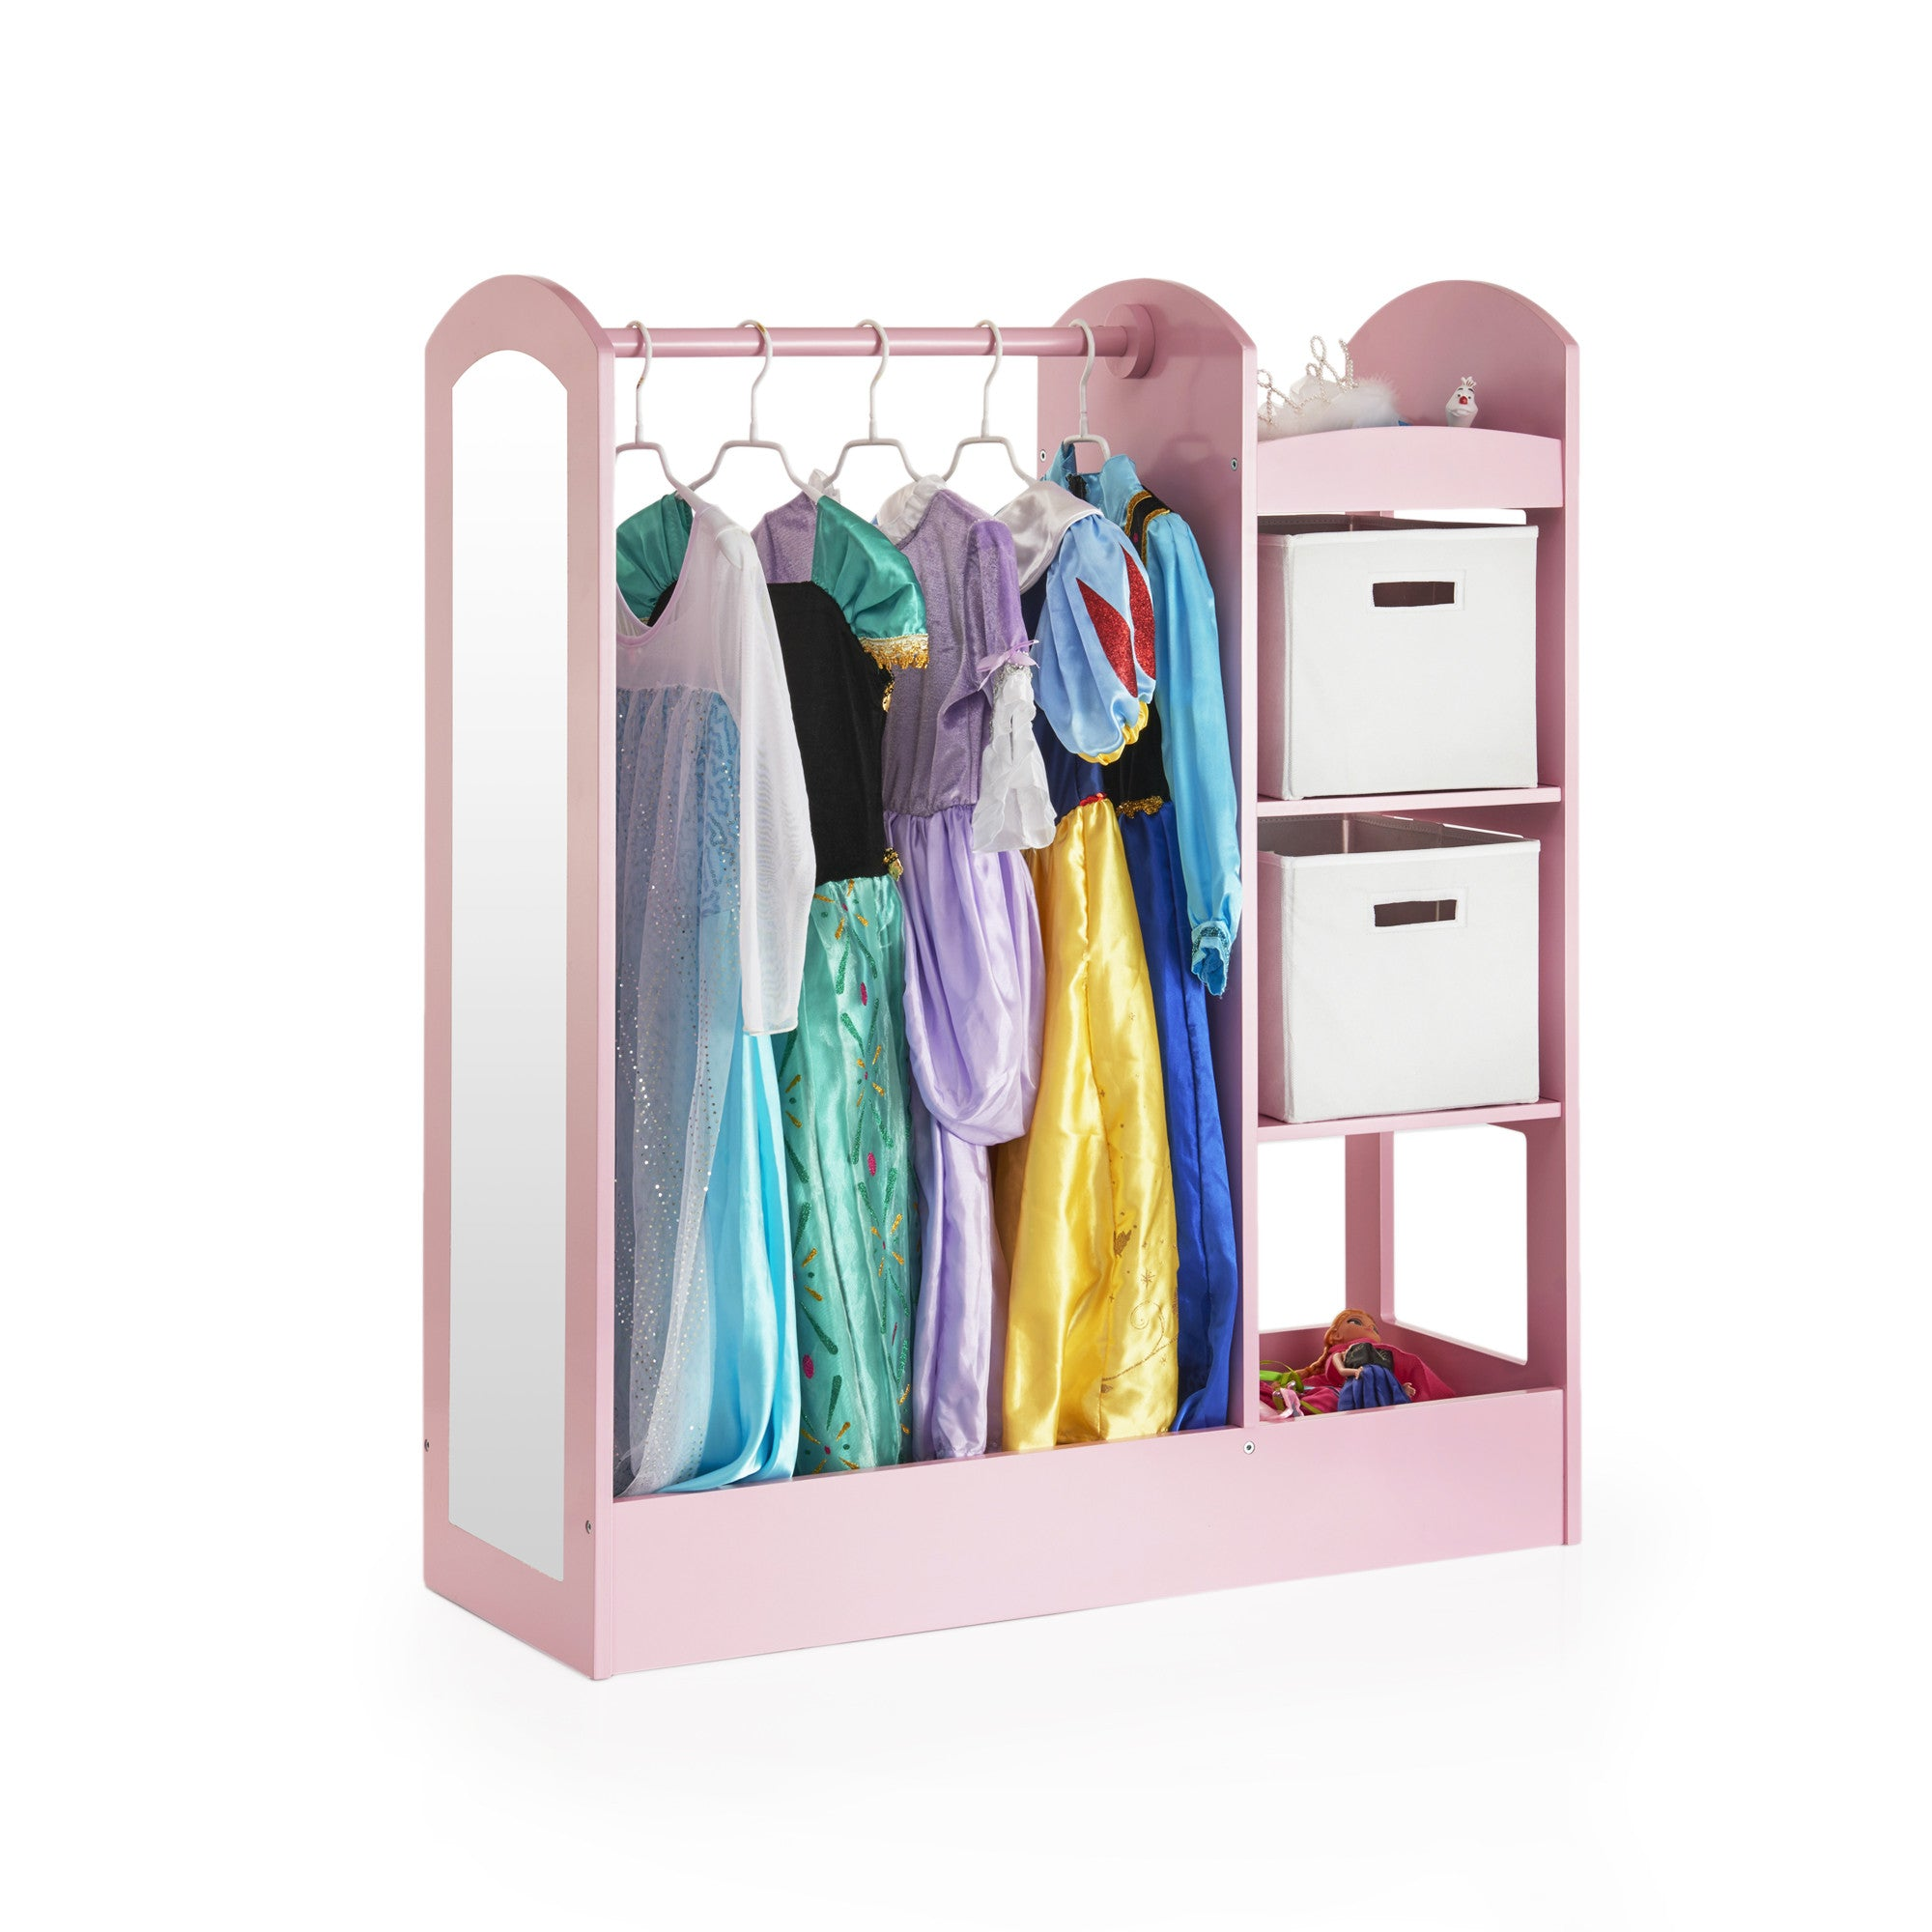 Guidecraft See and Store Dress Up Center – Pink G98403